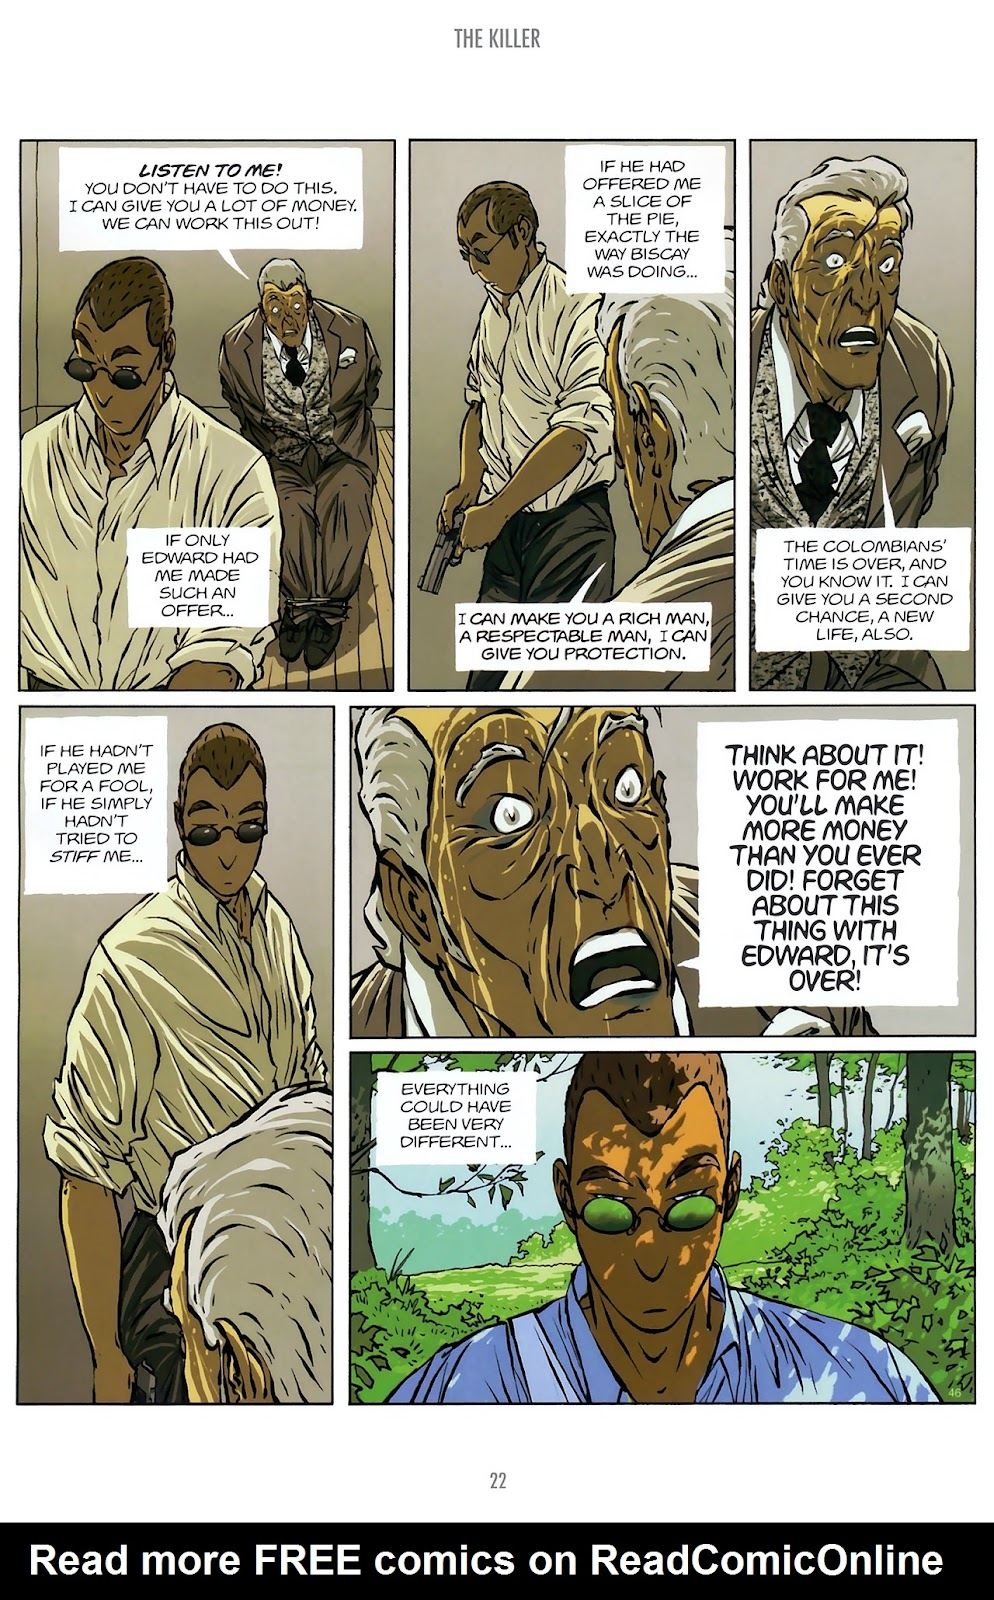 Read online The Killer comic -  Issue #10 - 22